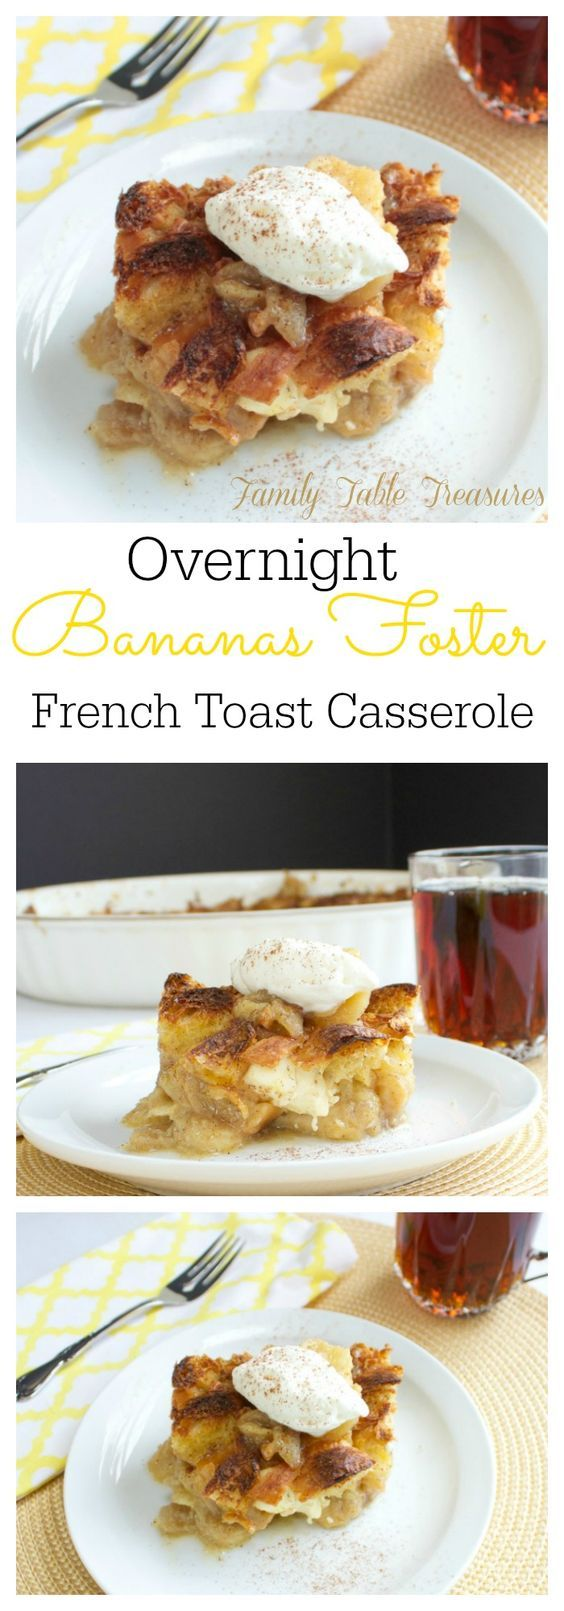 Overnight Bananas Foster French Toast Casserole | Recipe | Bananas ...